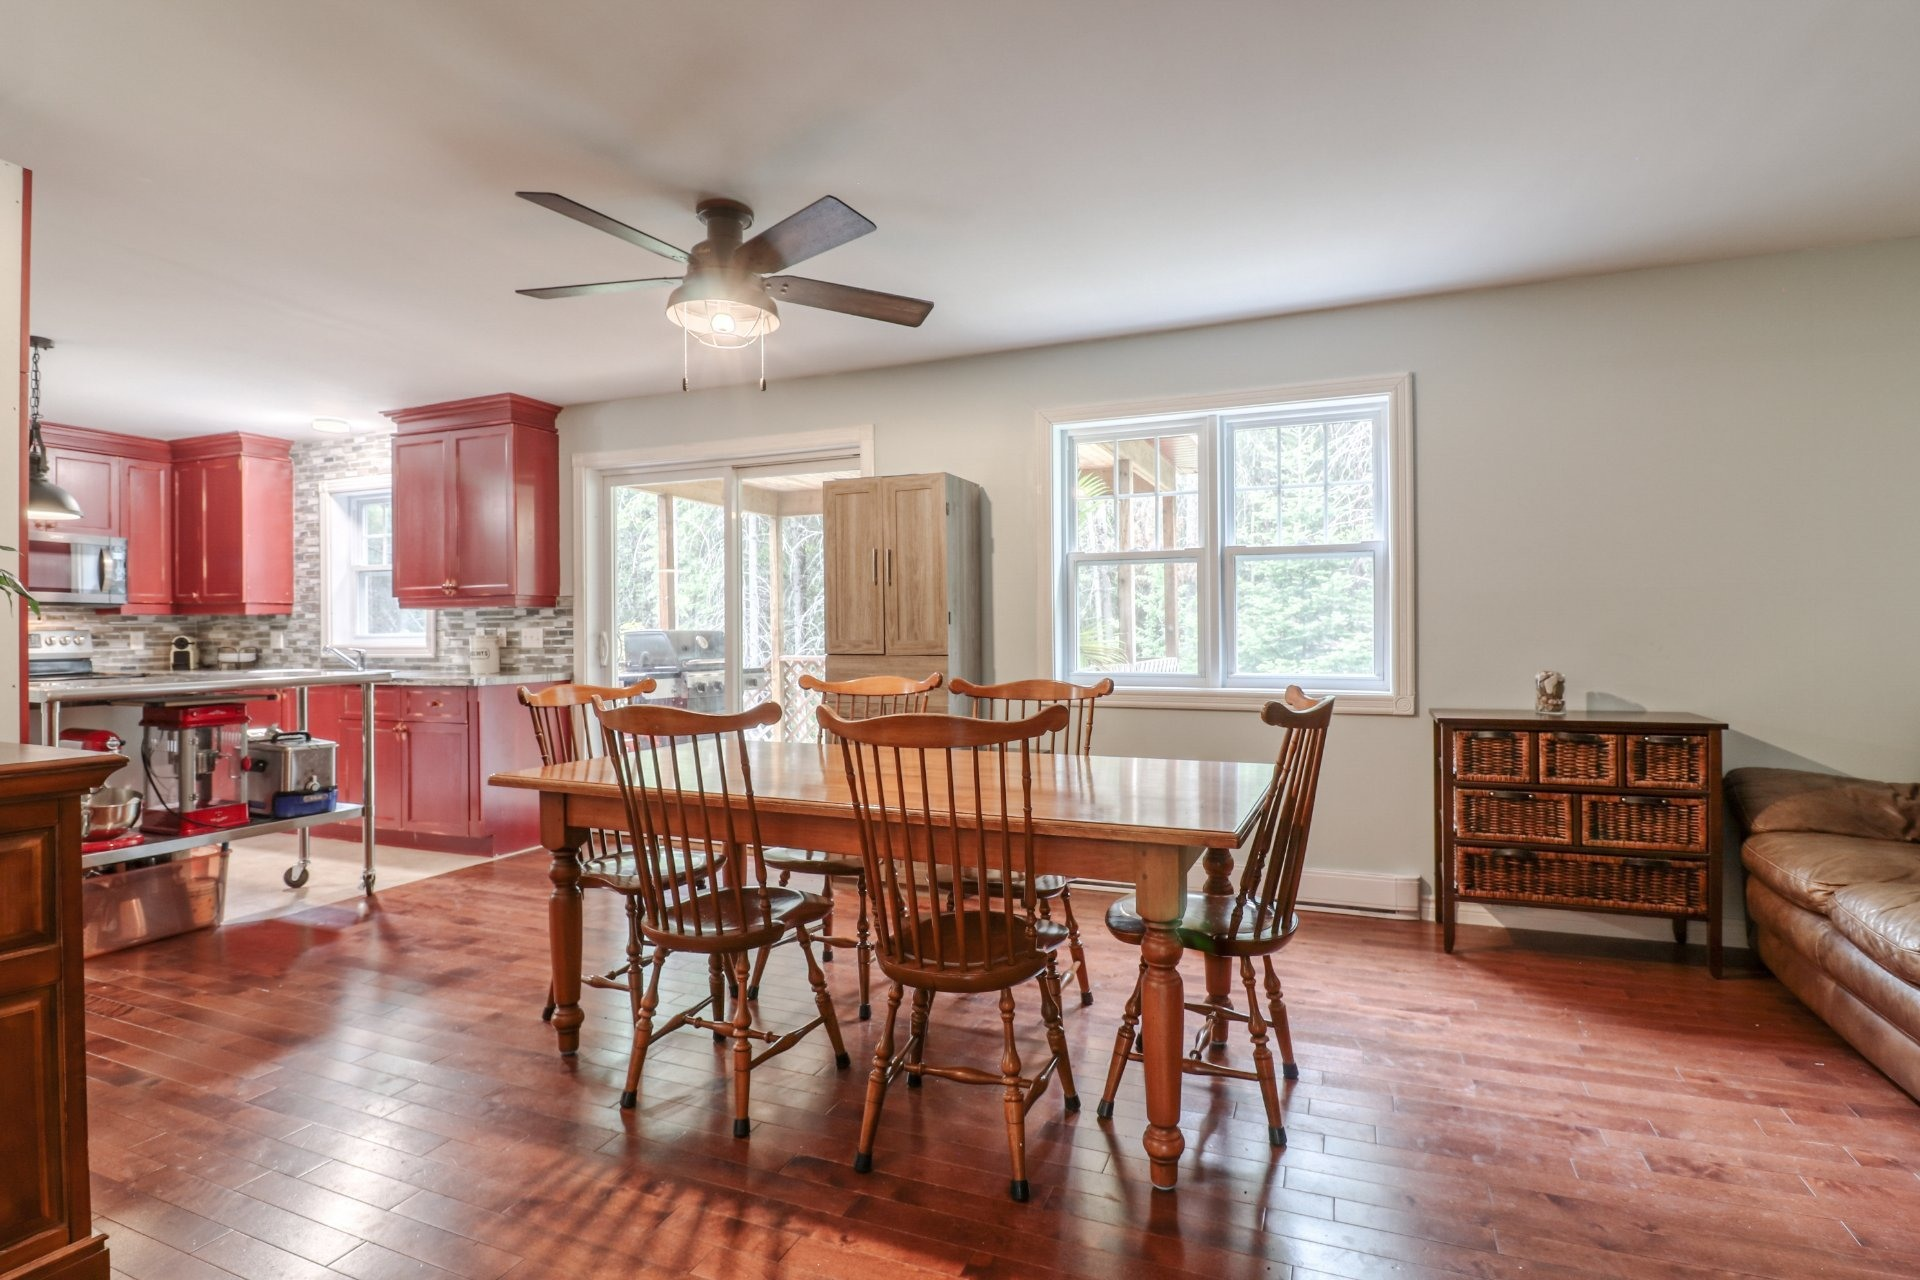 image 7 - House For sale Rawdon - 9 rooms